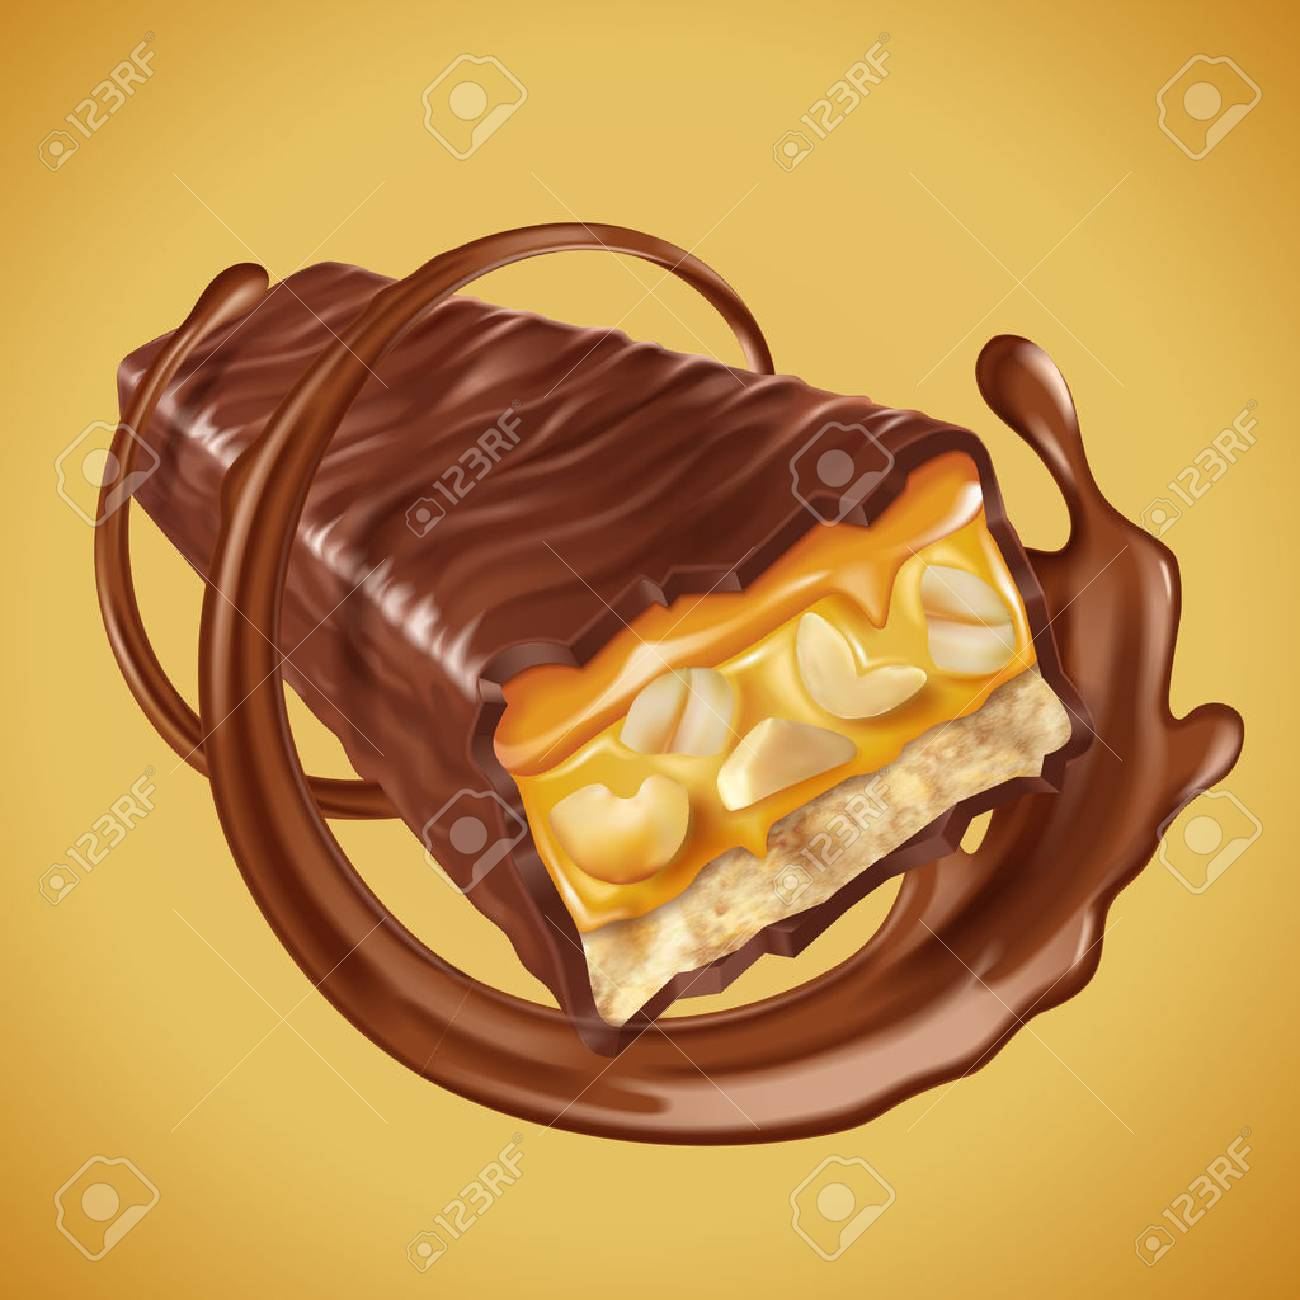 Chocolate bar element, sweet chocolate bar with nuts and caramel fillings, chocolate sauce swirling in 3d illustration - 83363888